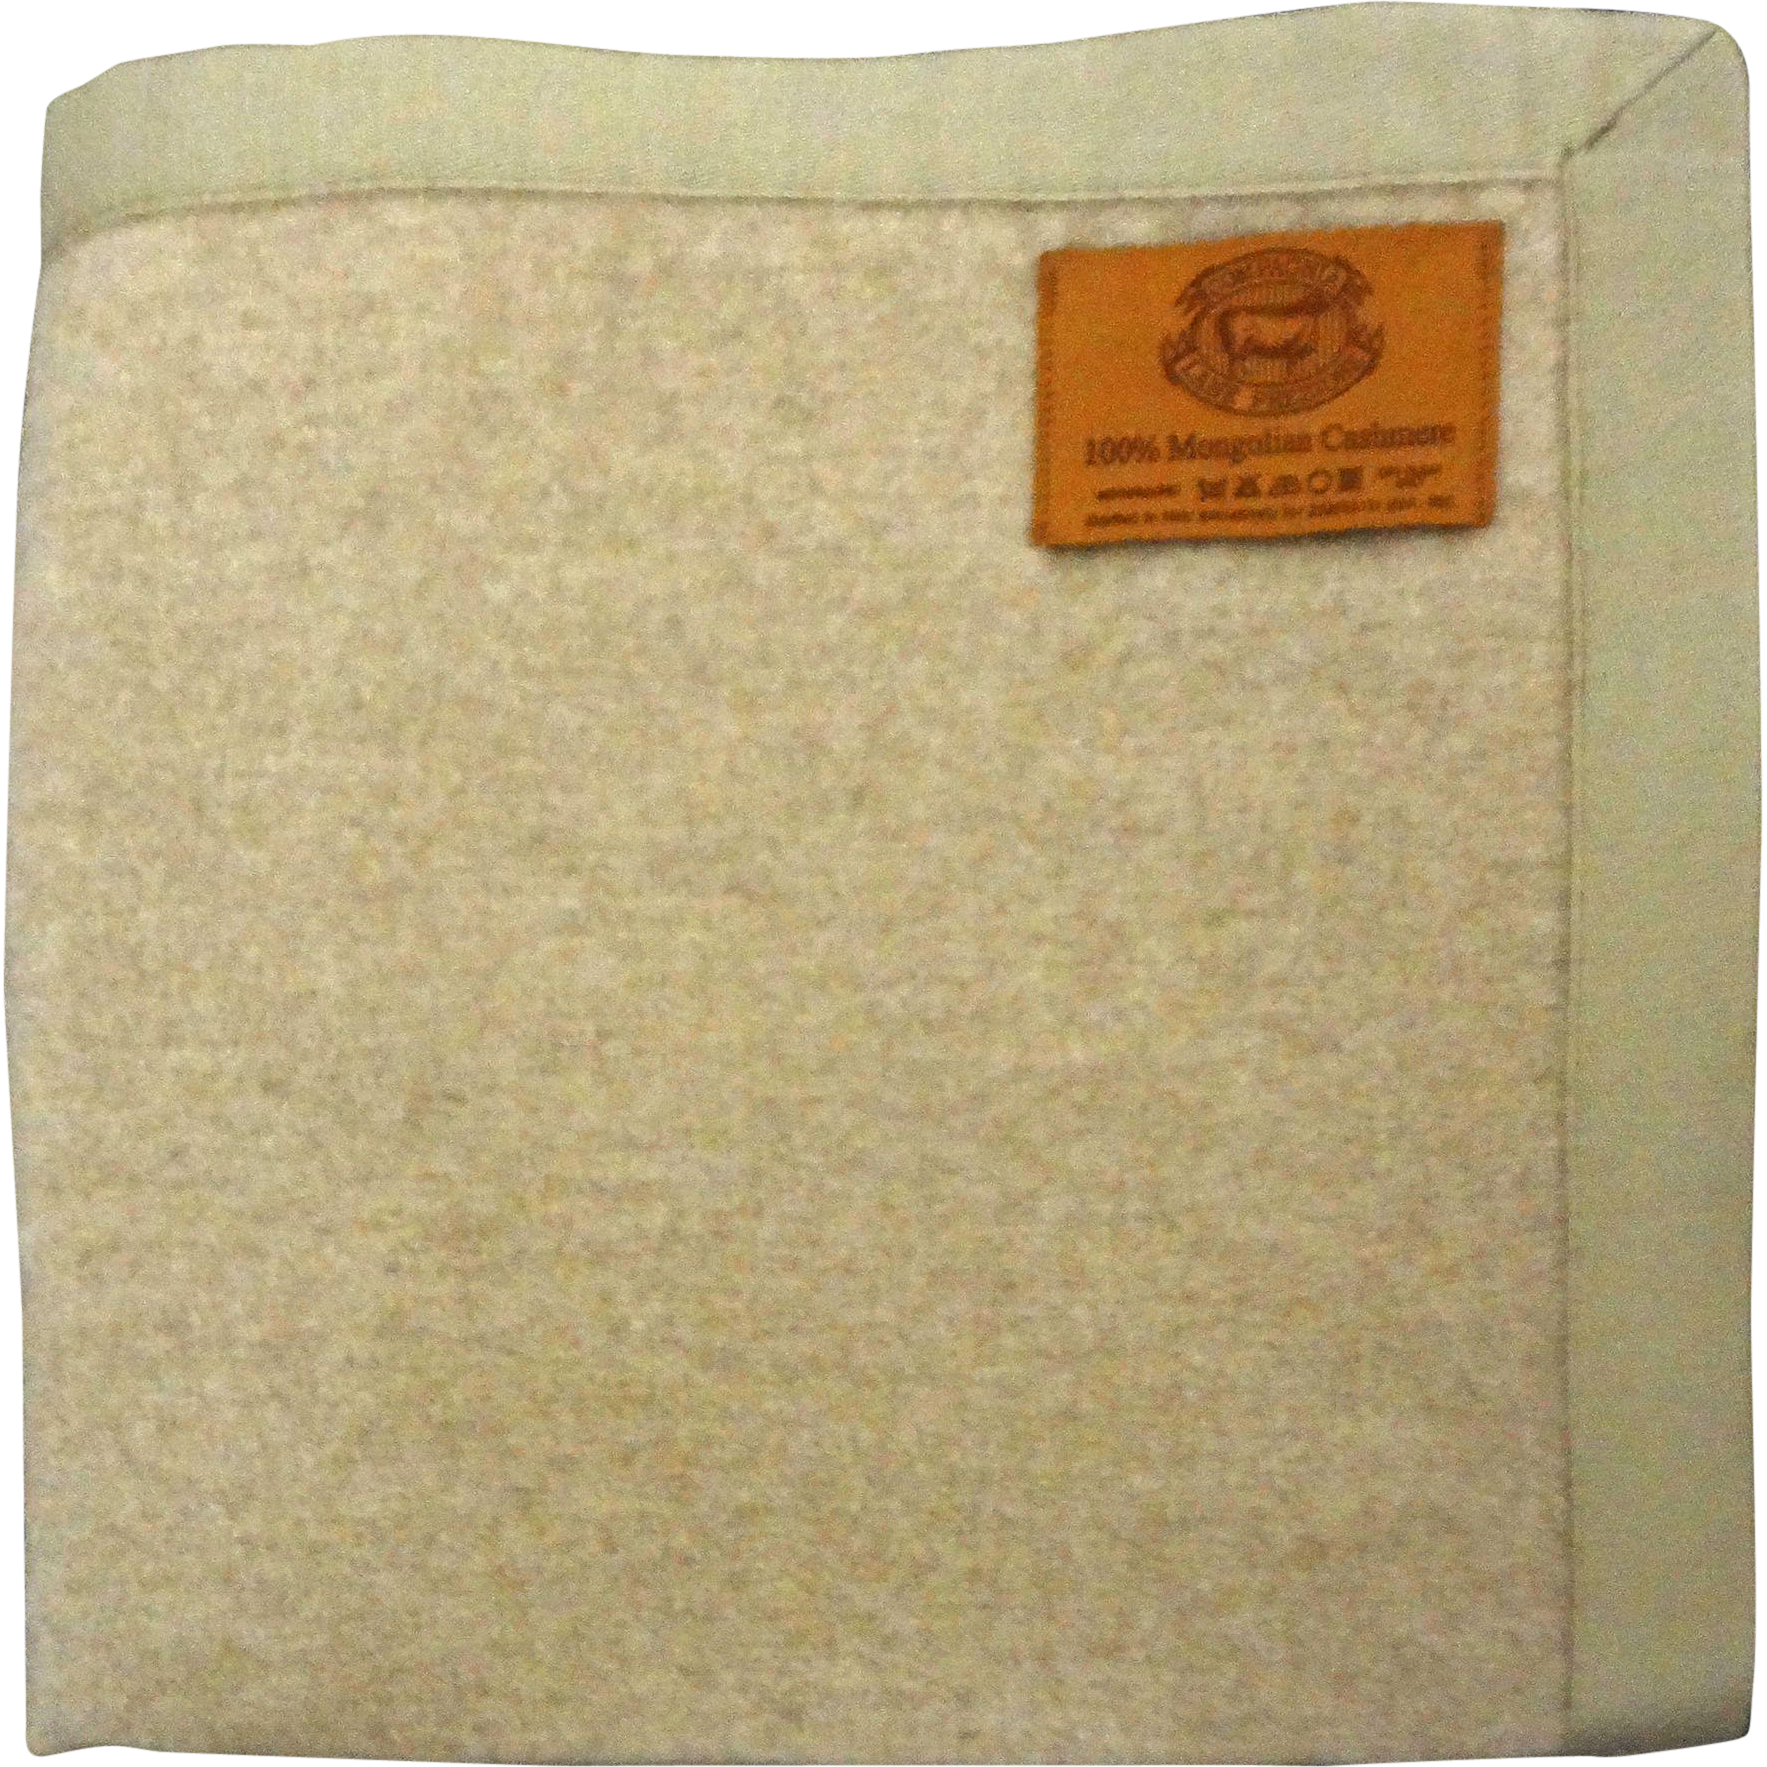 100% Cashmere Throw / Blanket Beige / Camel Large 96x66 Inch - Italy